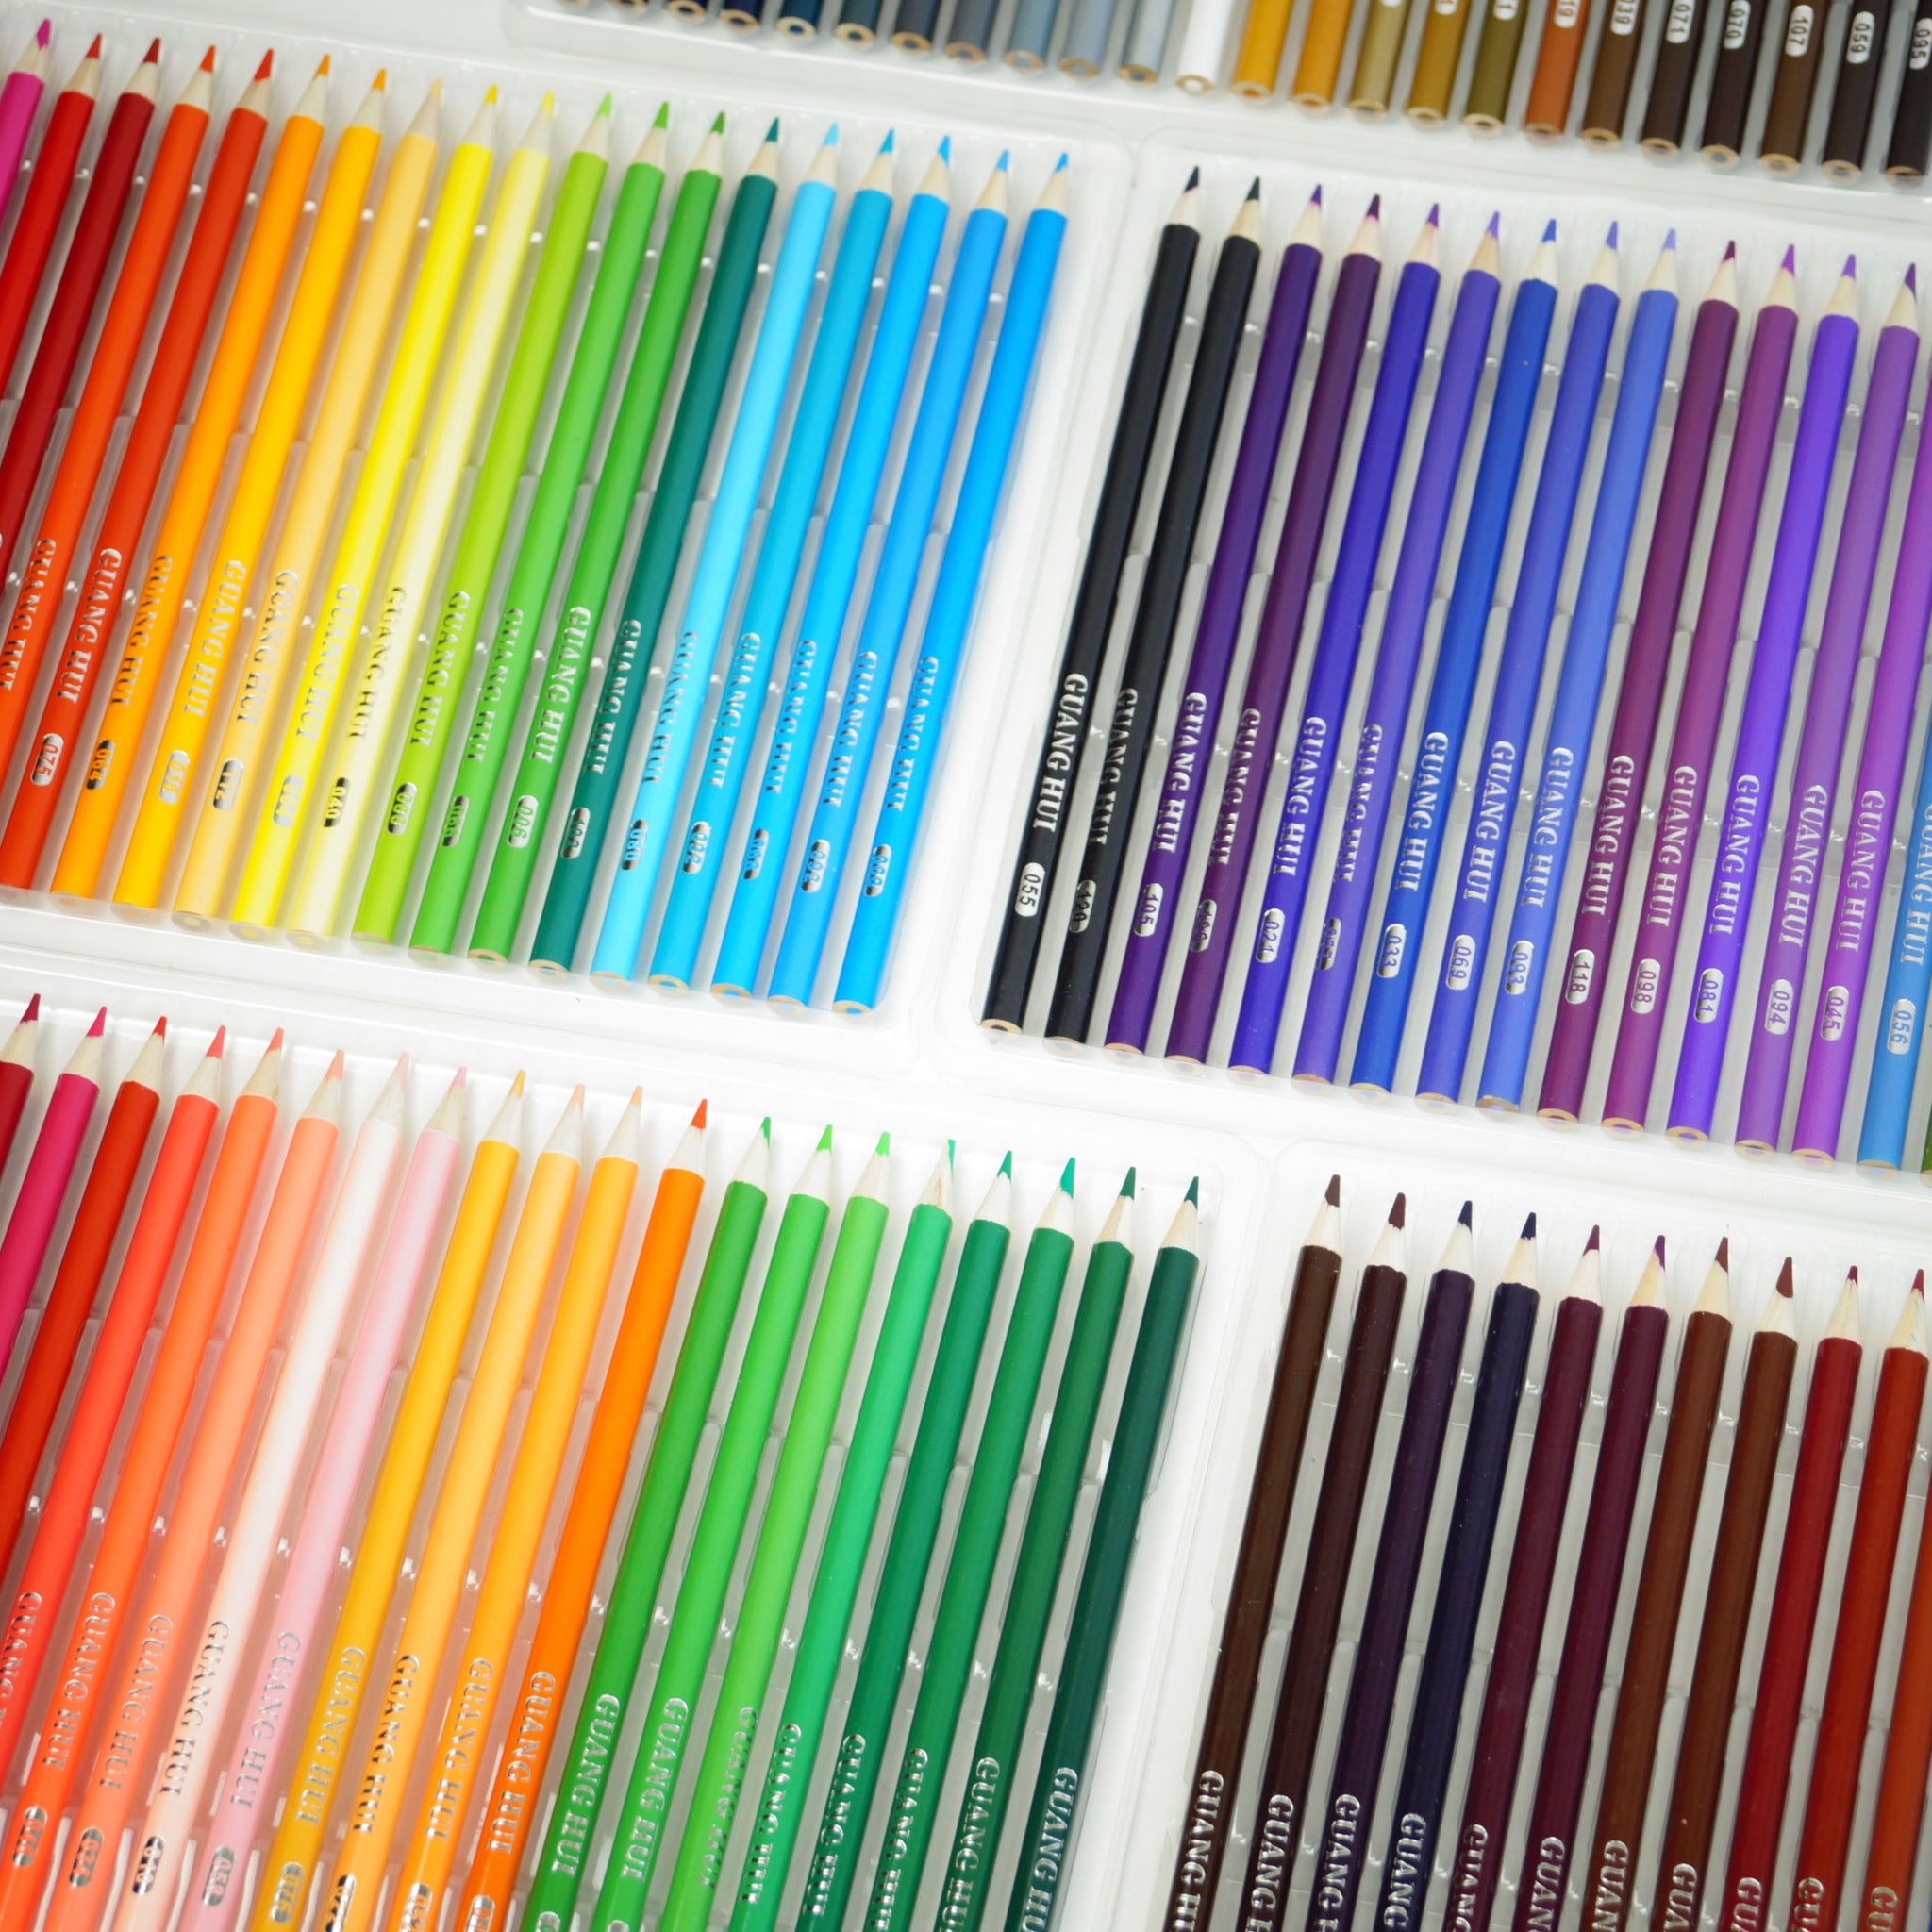 Hero 120 Colored Pencils For Adults Coloring Pencils Sets For